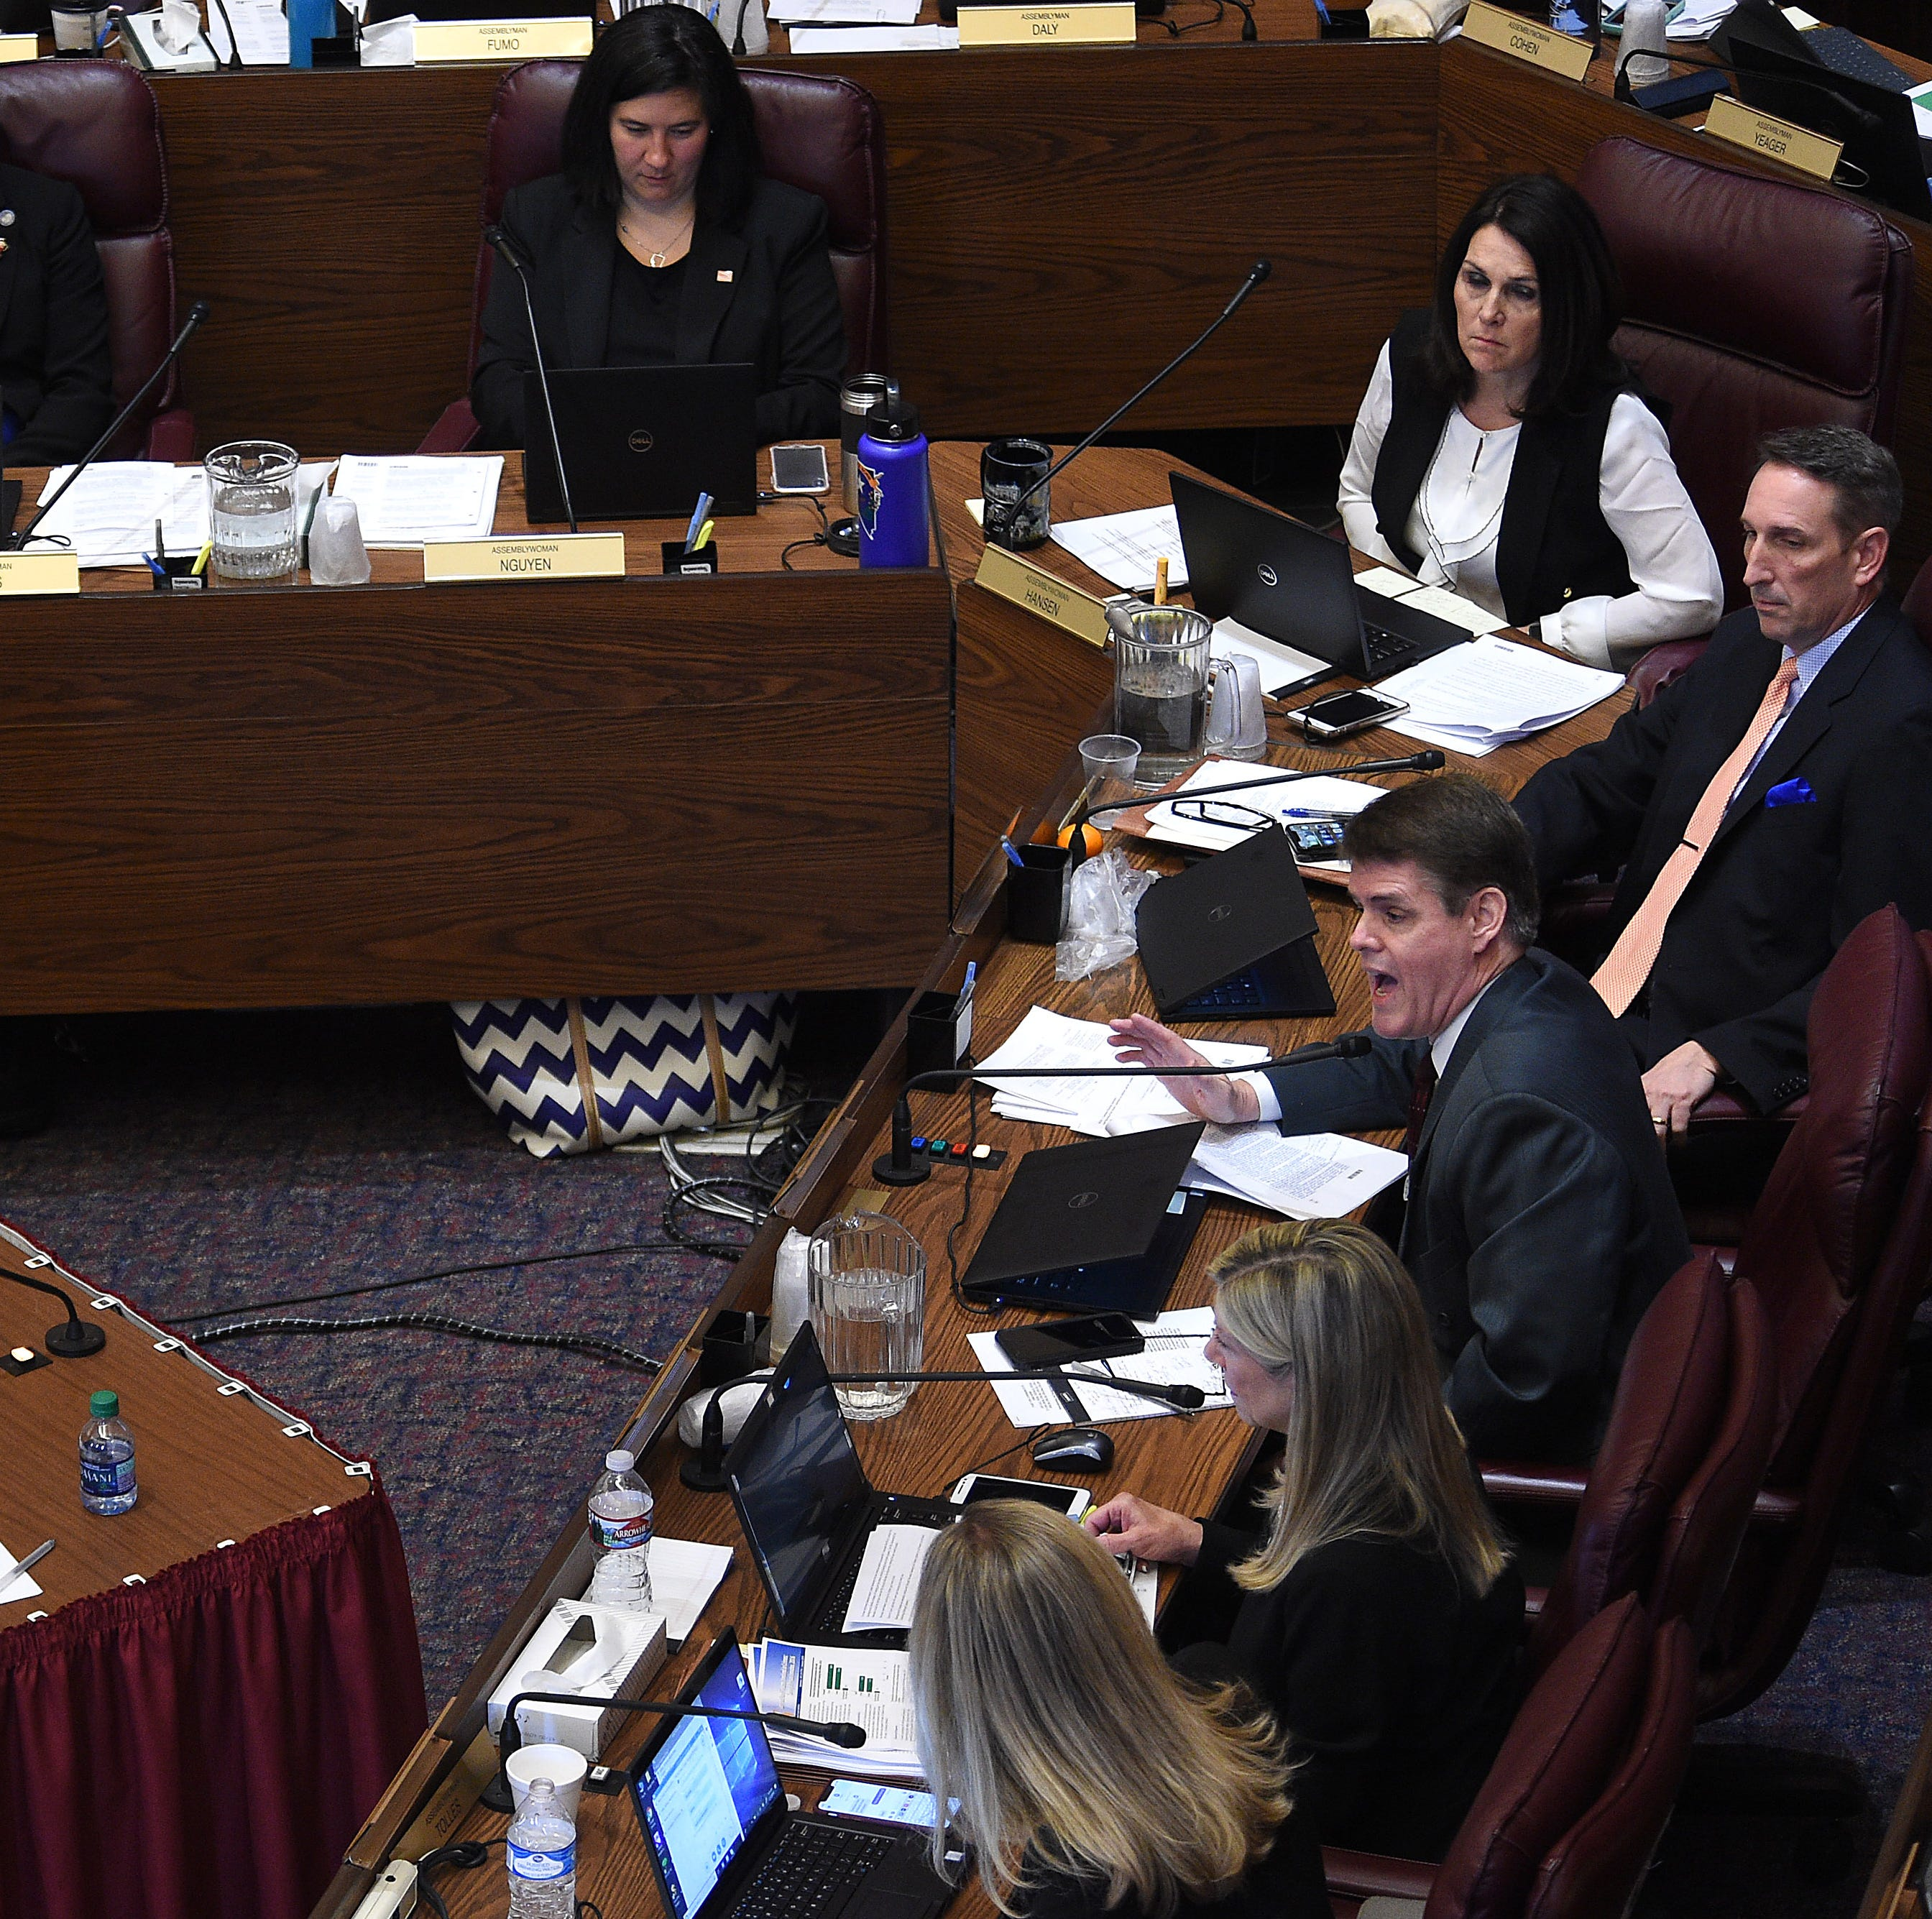 Assemblyman Chris Edwards (Rep.- District 19), right, asks a question to State Senate Majority Leader Kelvin Atkinson and William Rosen with Everytown for Gun Safety during a hearing for Senate Bill 143 at the Nevada Legislature Building in Carson City on Feb. 12, 2019.